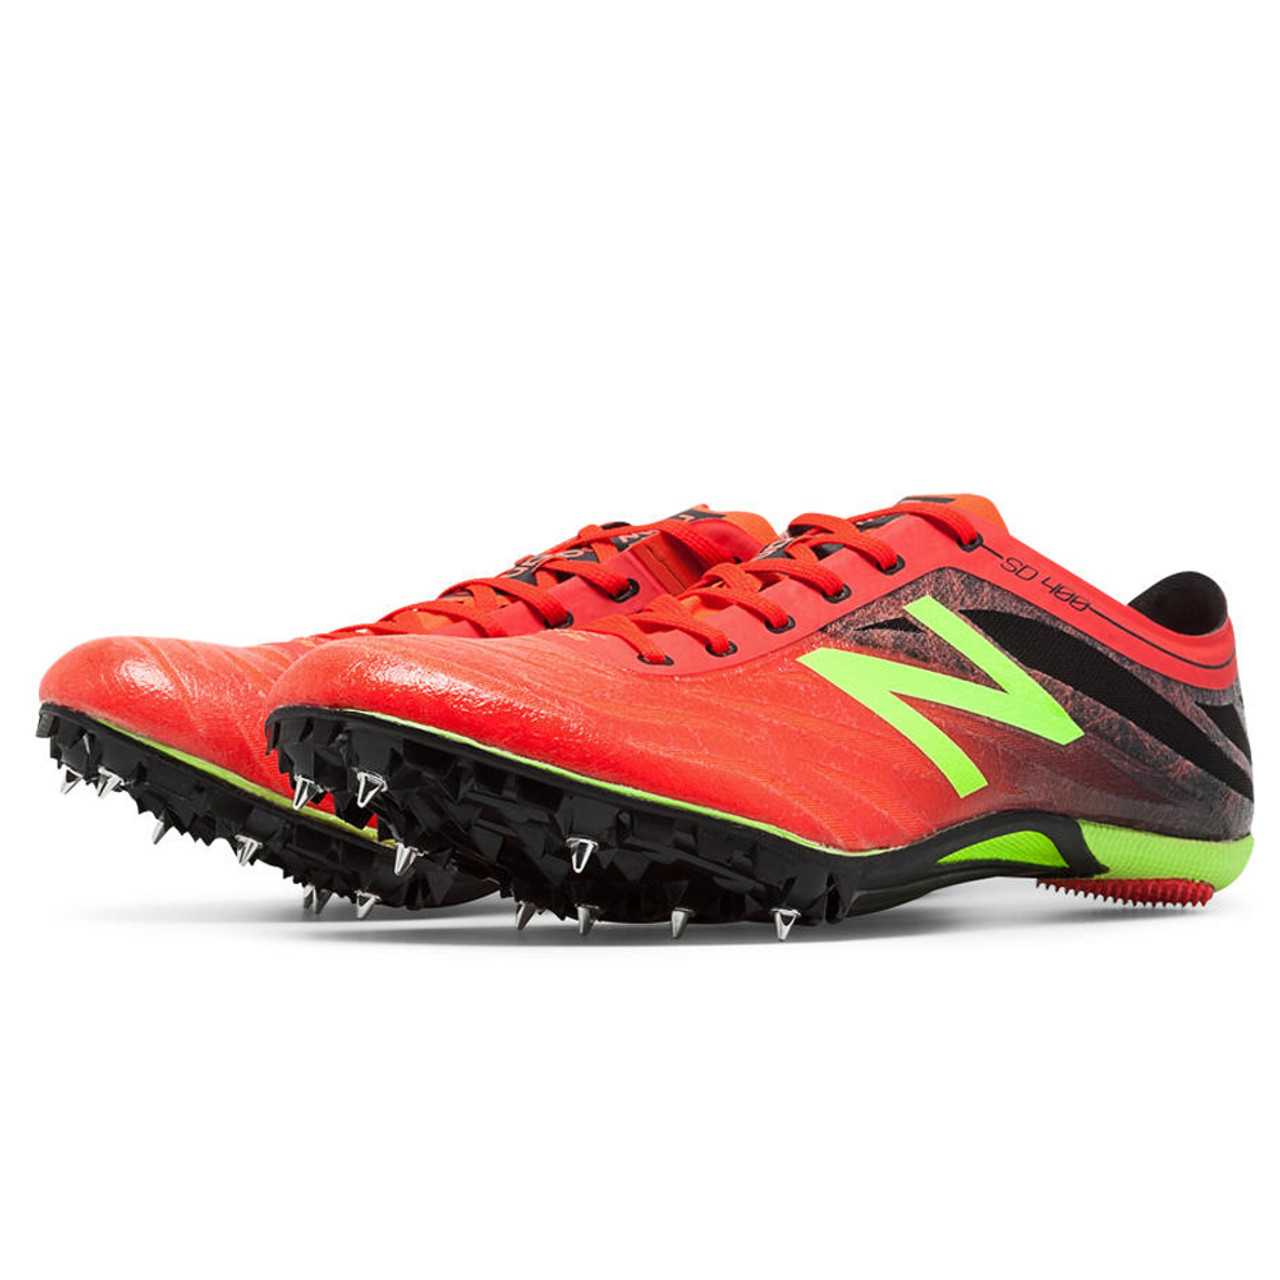 d435ba9342ee5 New Balance Men's MSD400R3 SD400v3 Spike Track Spikes Flame/Black/Toxic -  Shop now